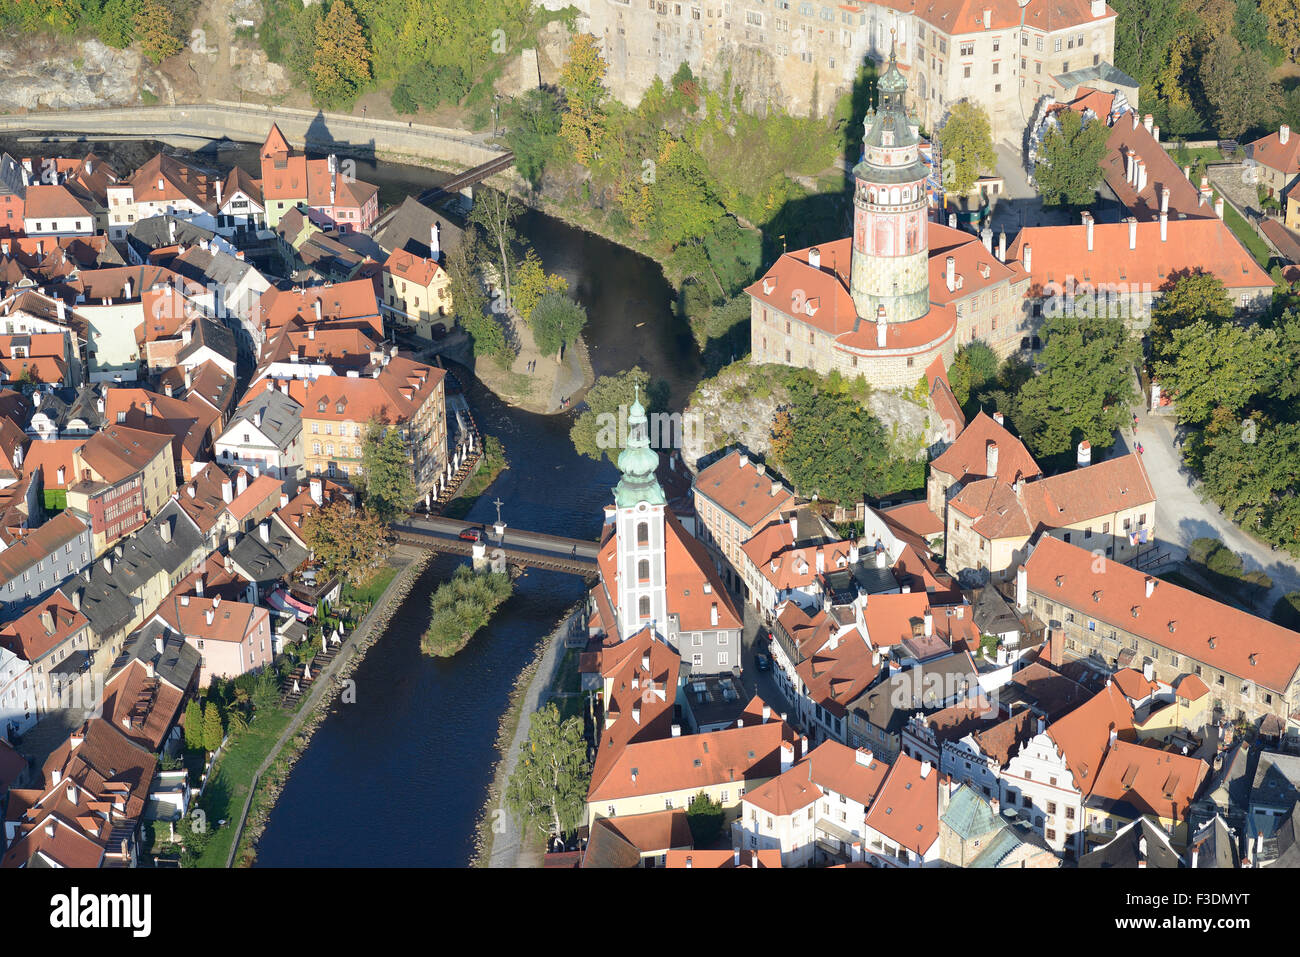 CASTLE OVERLOOKING THE MEDIEVAL TOWN AND THE VLTAVA RIVER (aerial view). Ceský Krumlov, Bohemia, Czech Republic. - Stock Image